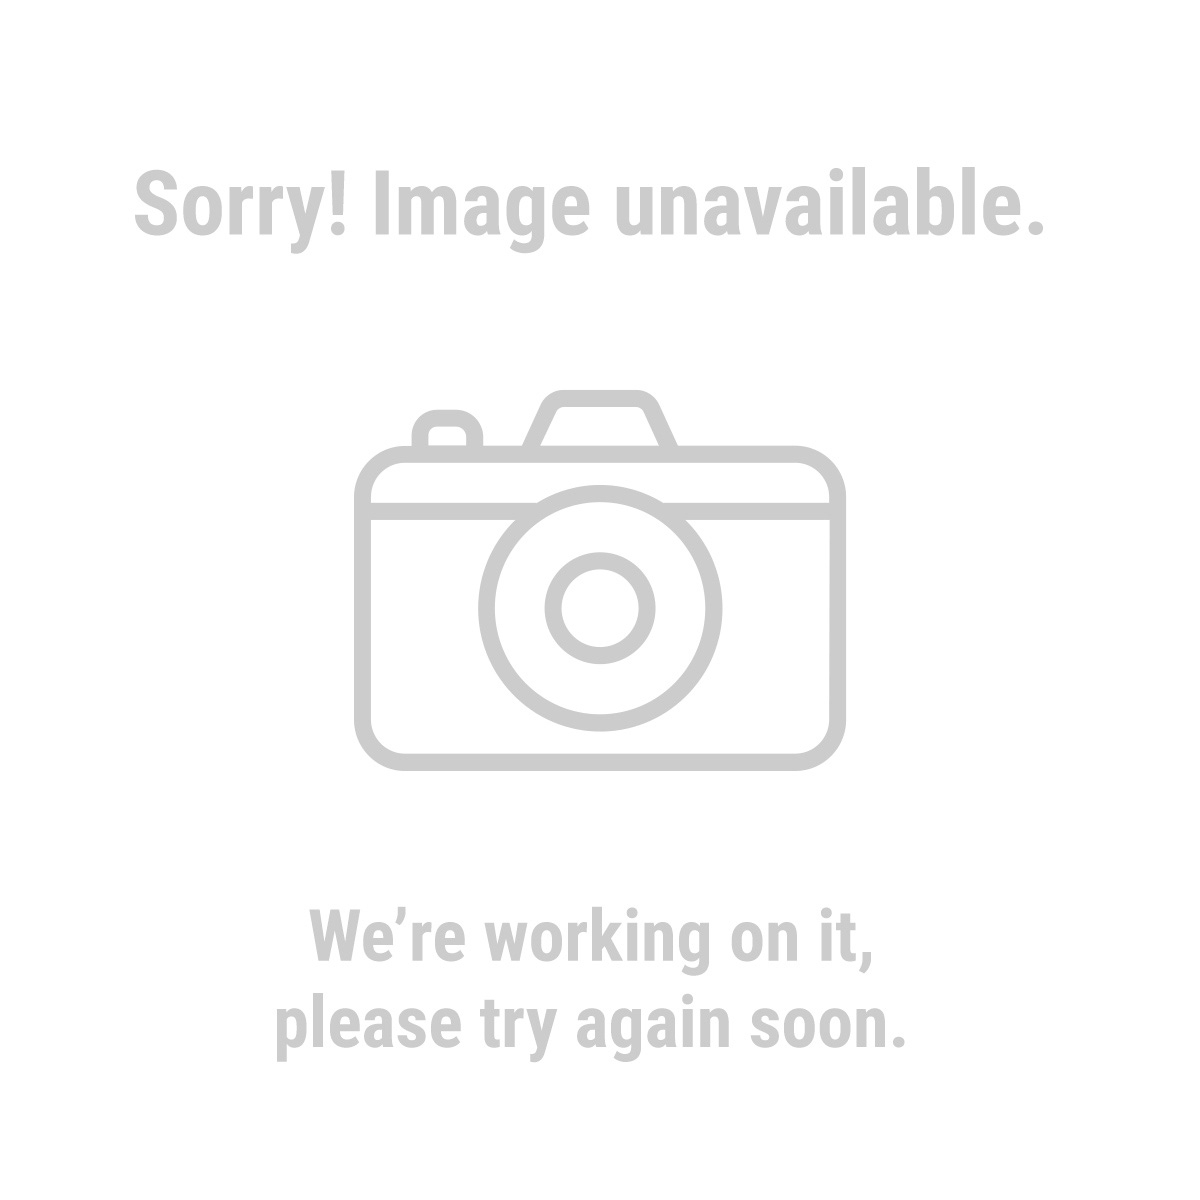 Central Machinery 93601 Dust Collector Accessory Kit